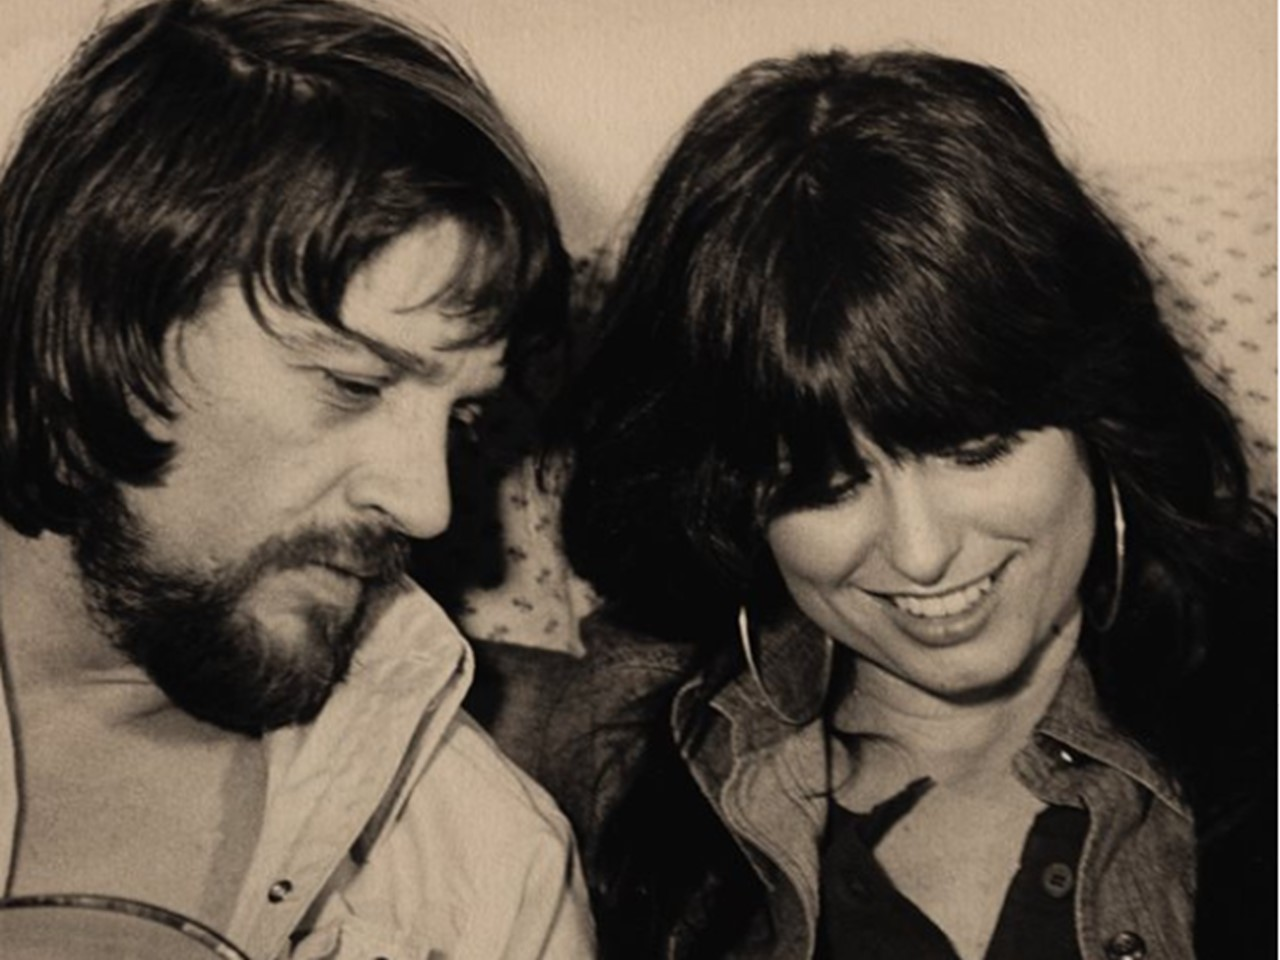 Waylon Jennings and Jessi Colter